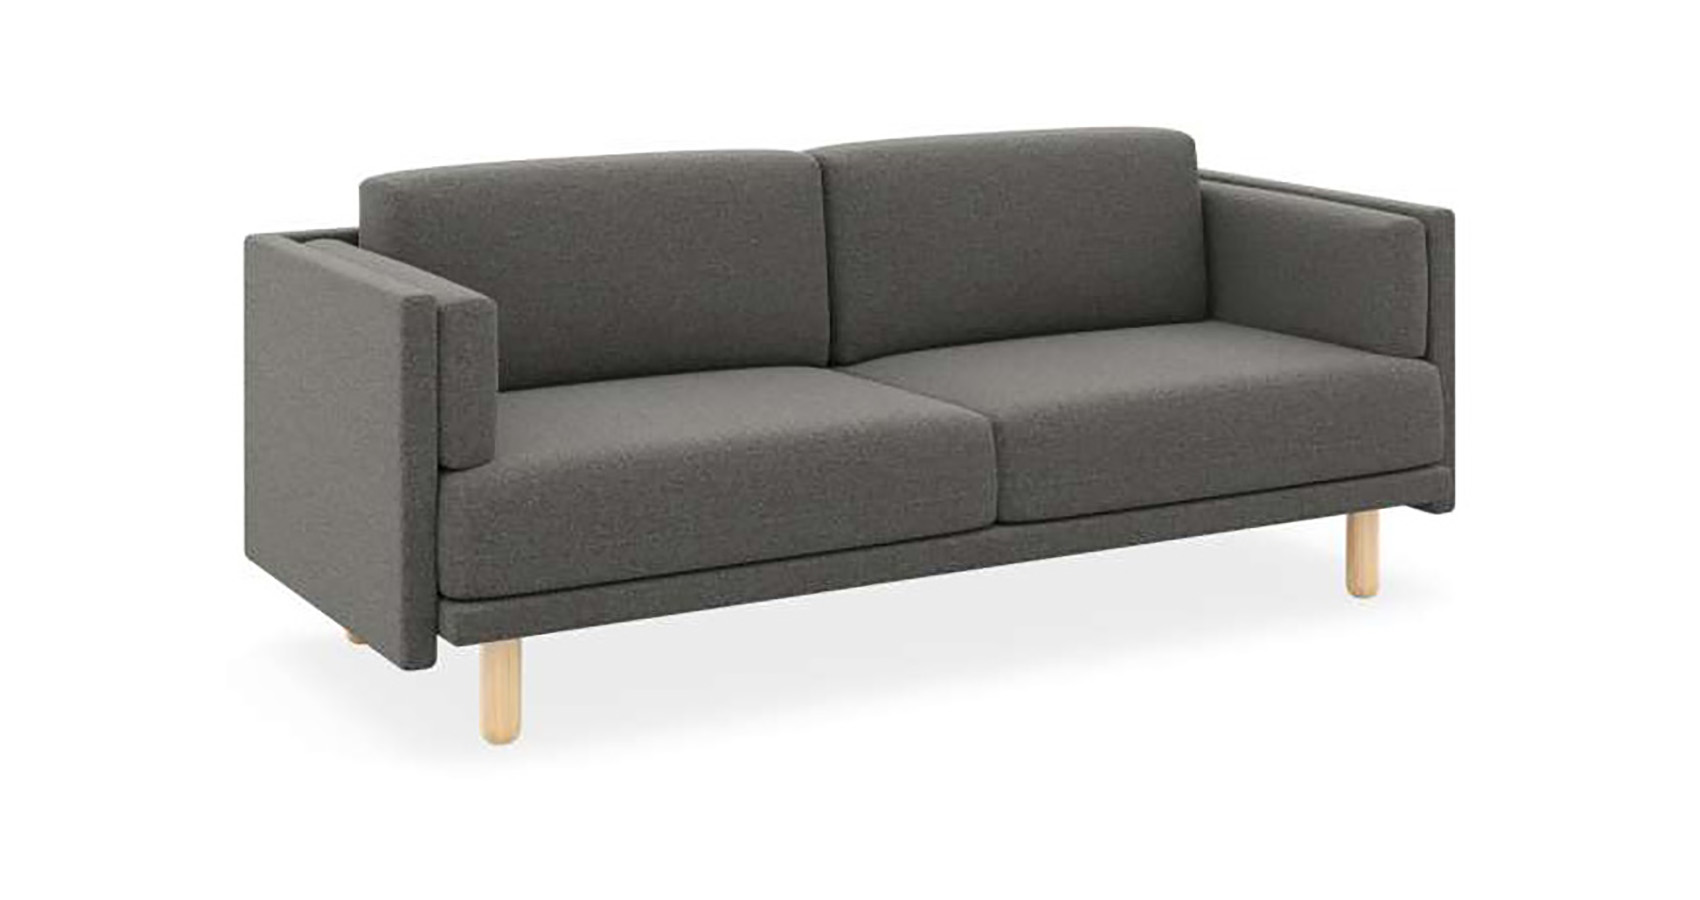 Benj Low 3 Seater Charcoal FV